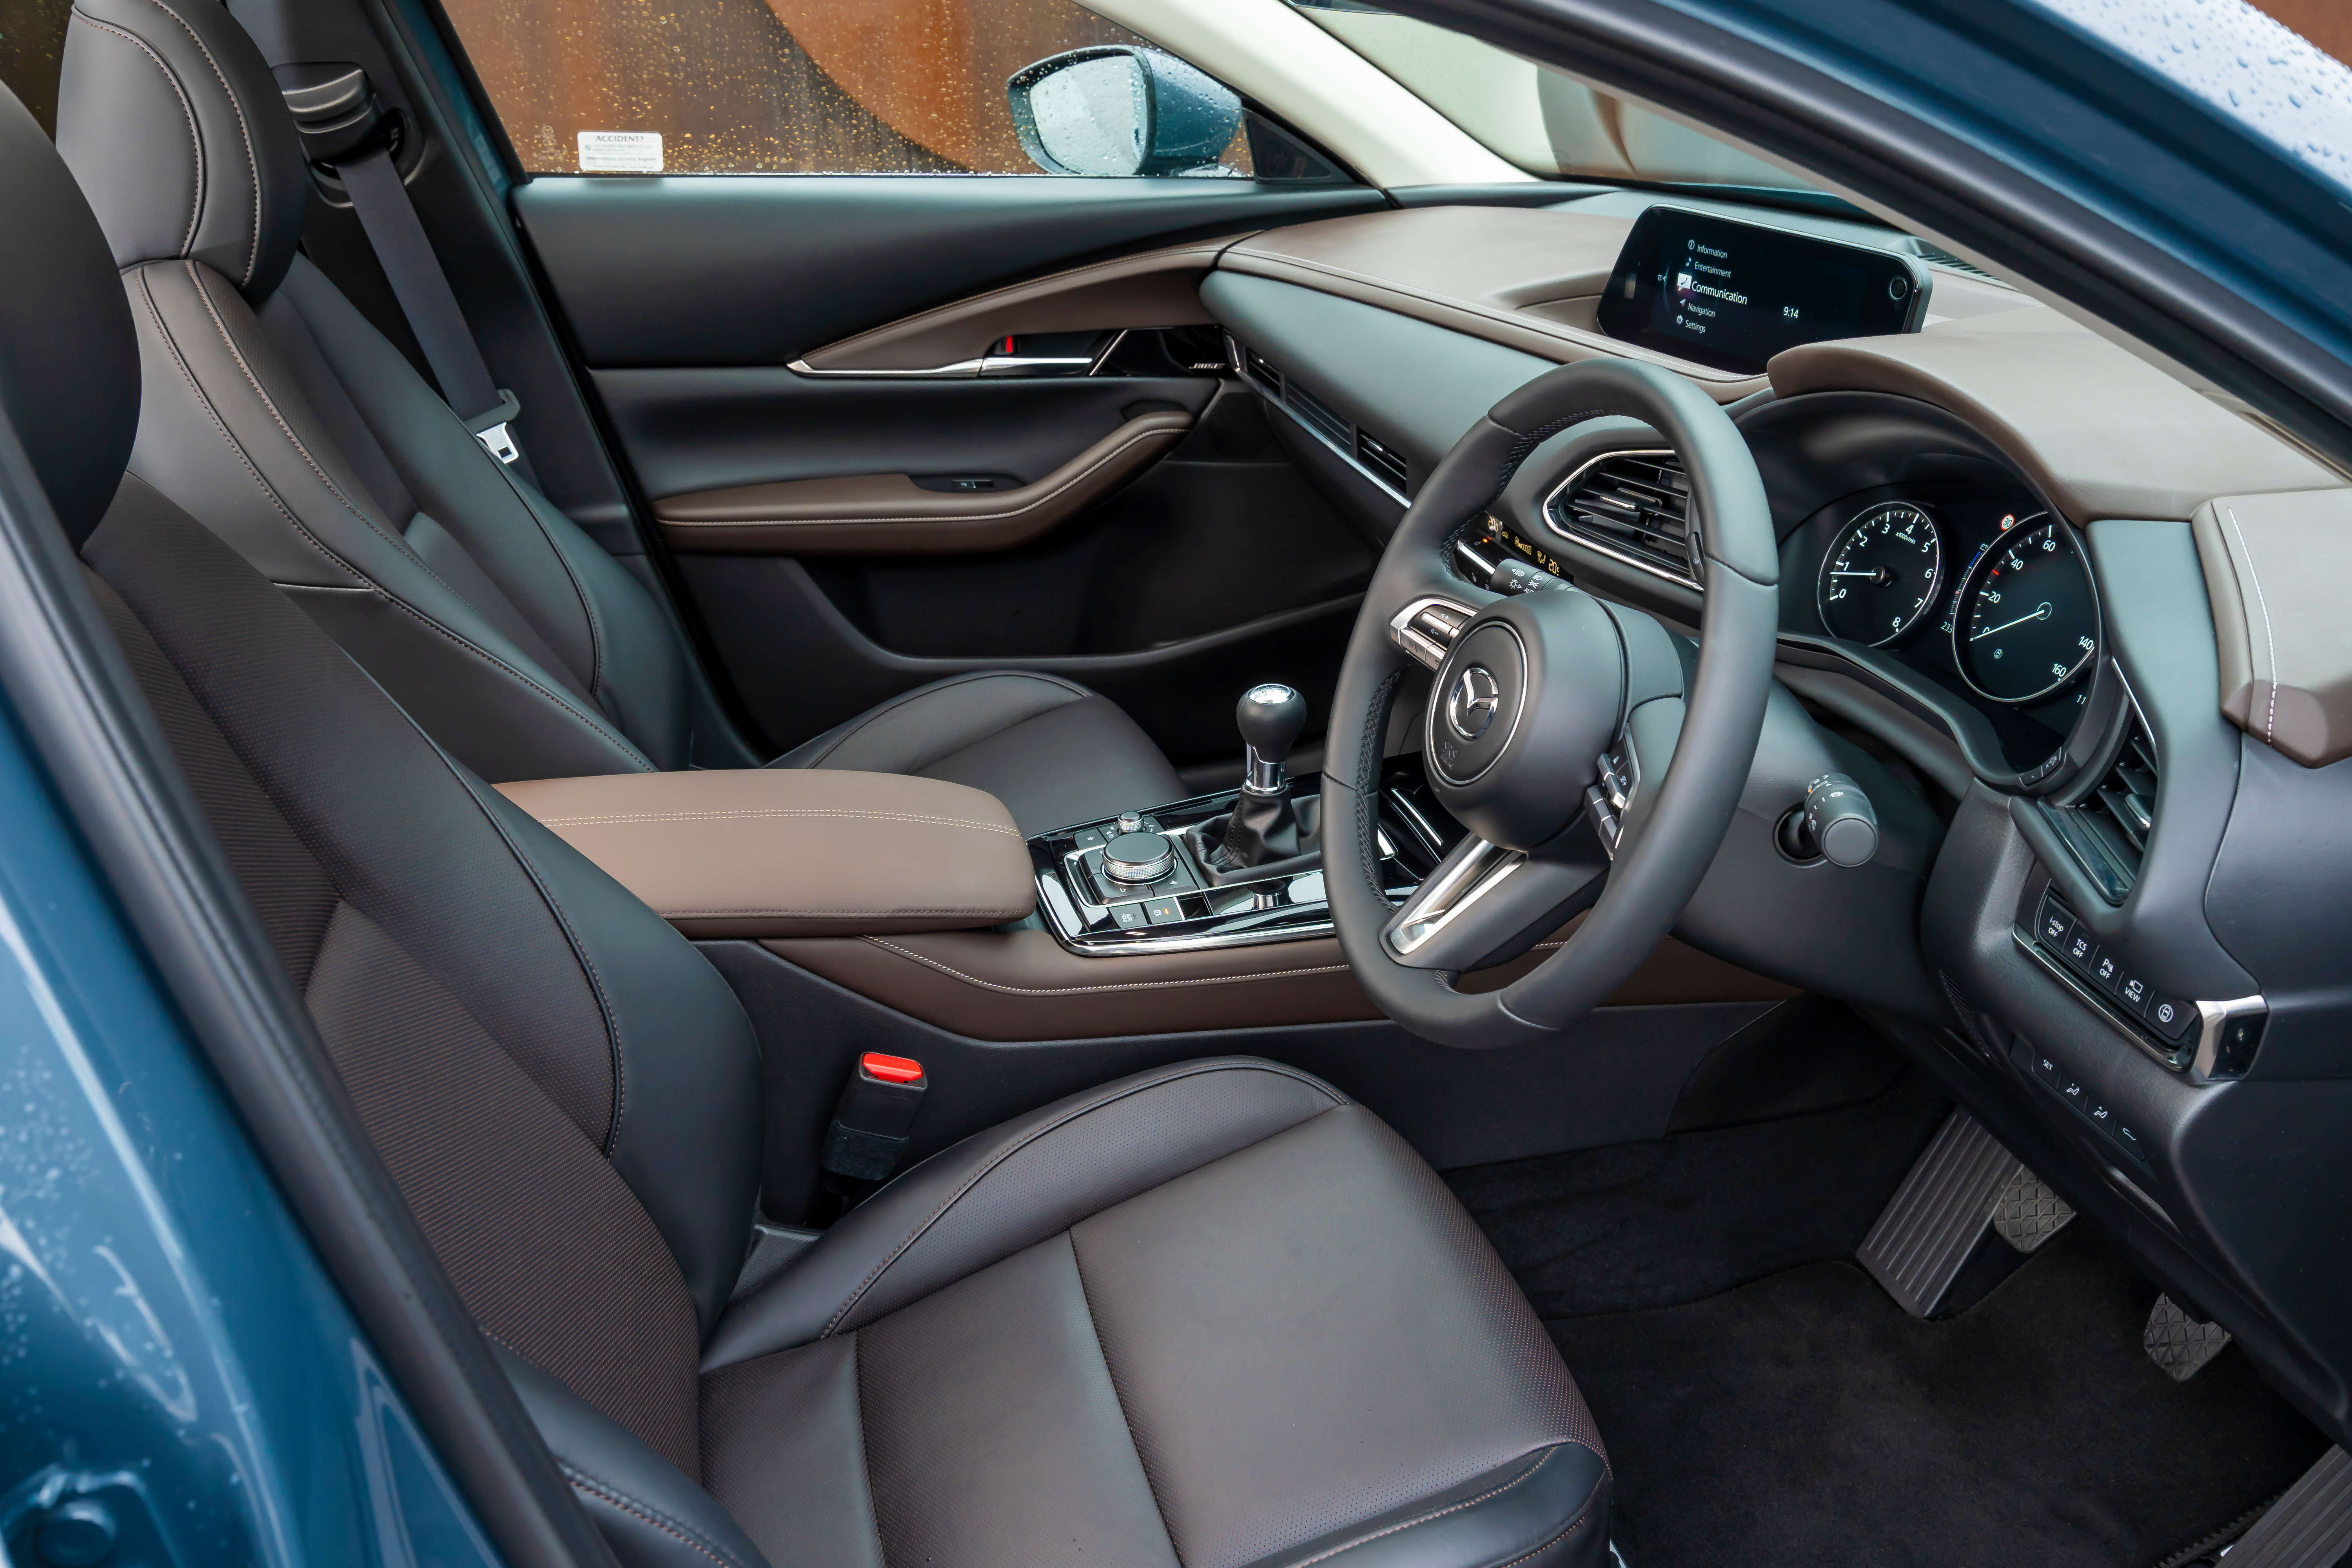 The Mazda includes leather upholstery, powered front seats, head-up display, heated steering wheel, keyless entry and go, and a 12-speaker Bose sound system